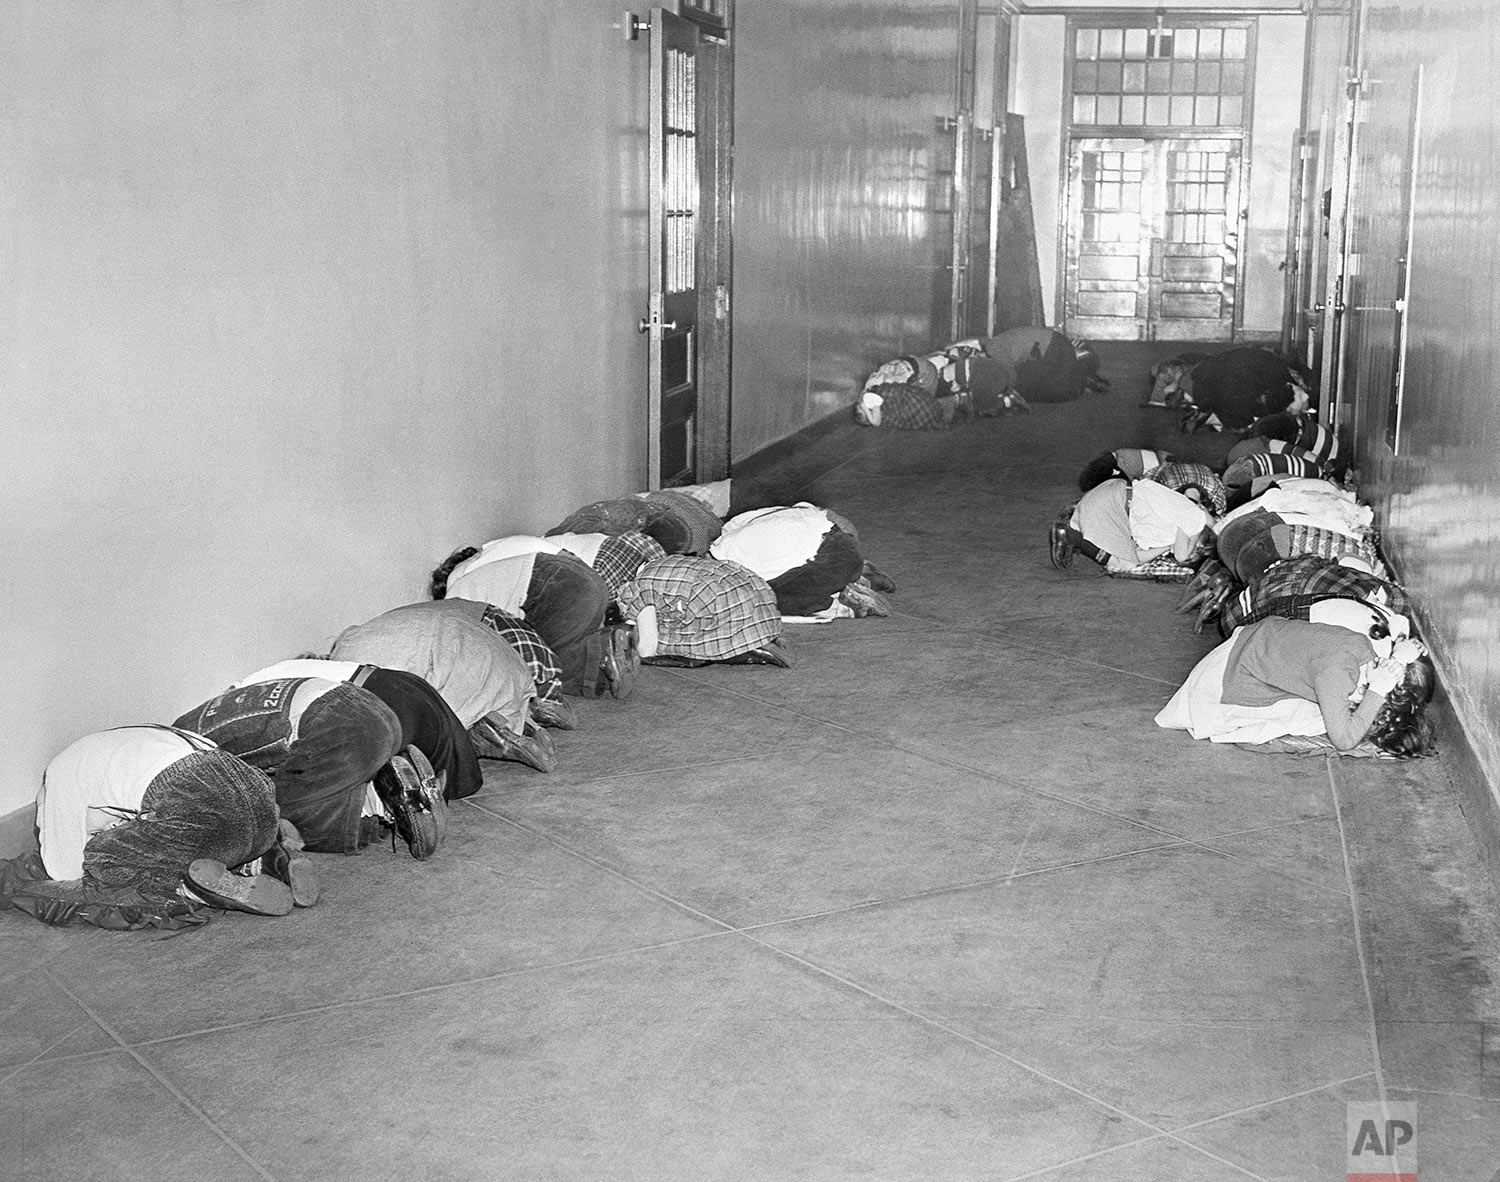 In this Jan. 25, 1951 file photo, students at Thomas Jefferson elementary school kneel in the hallway during an air raid drill being practiced by public schools in Baltimore. (AP Photo)